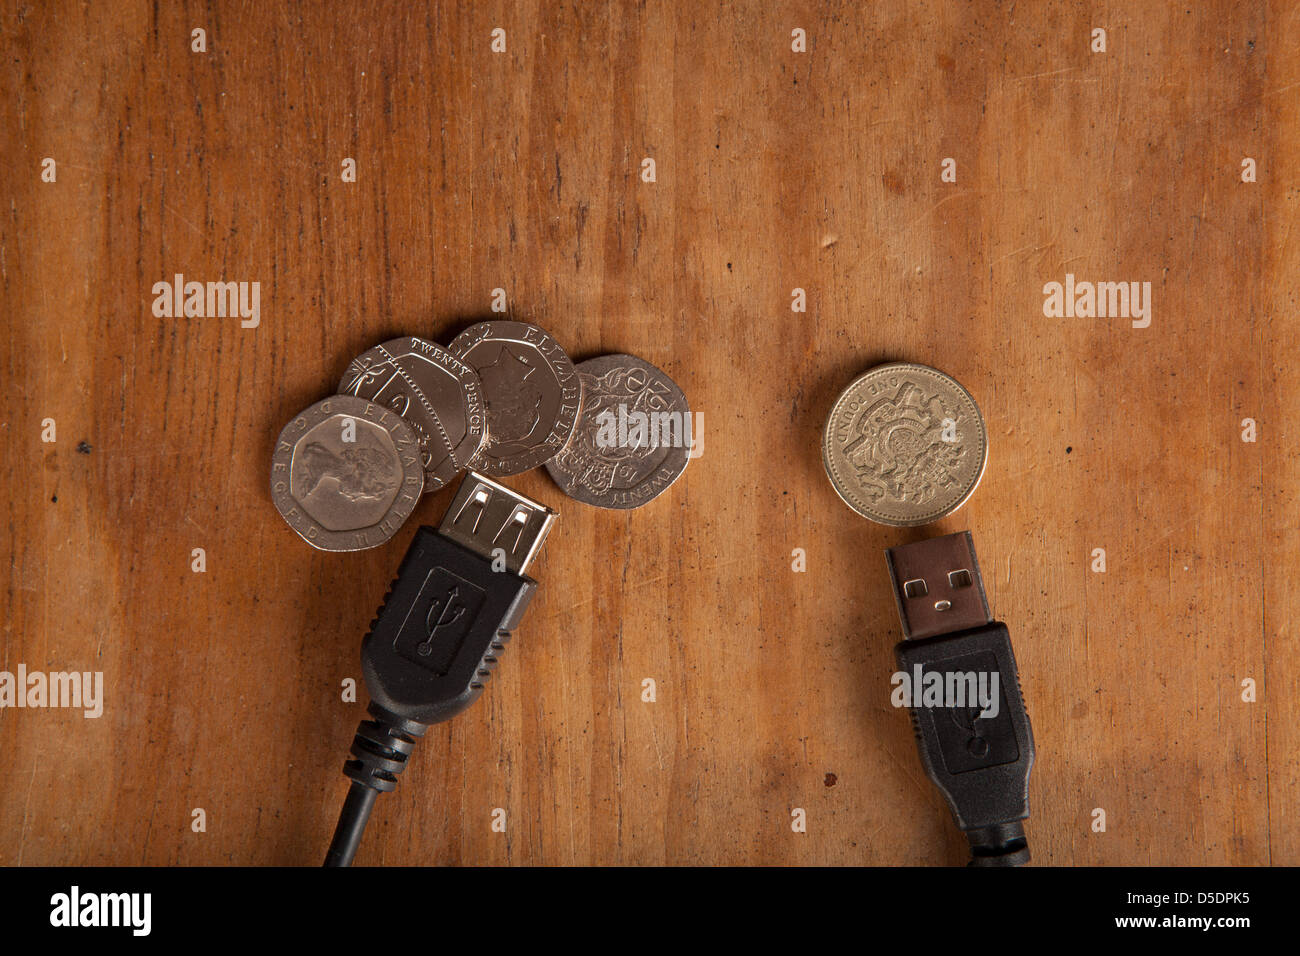 Online money transfer or bank/banking charges concept with UK coins. - Stock Image